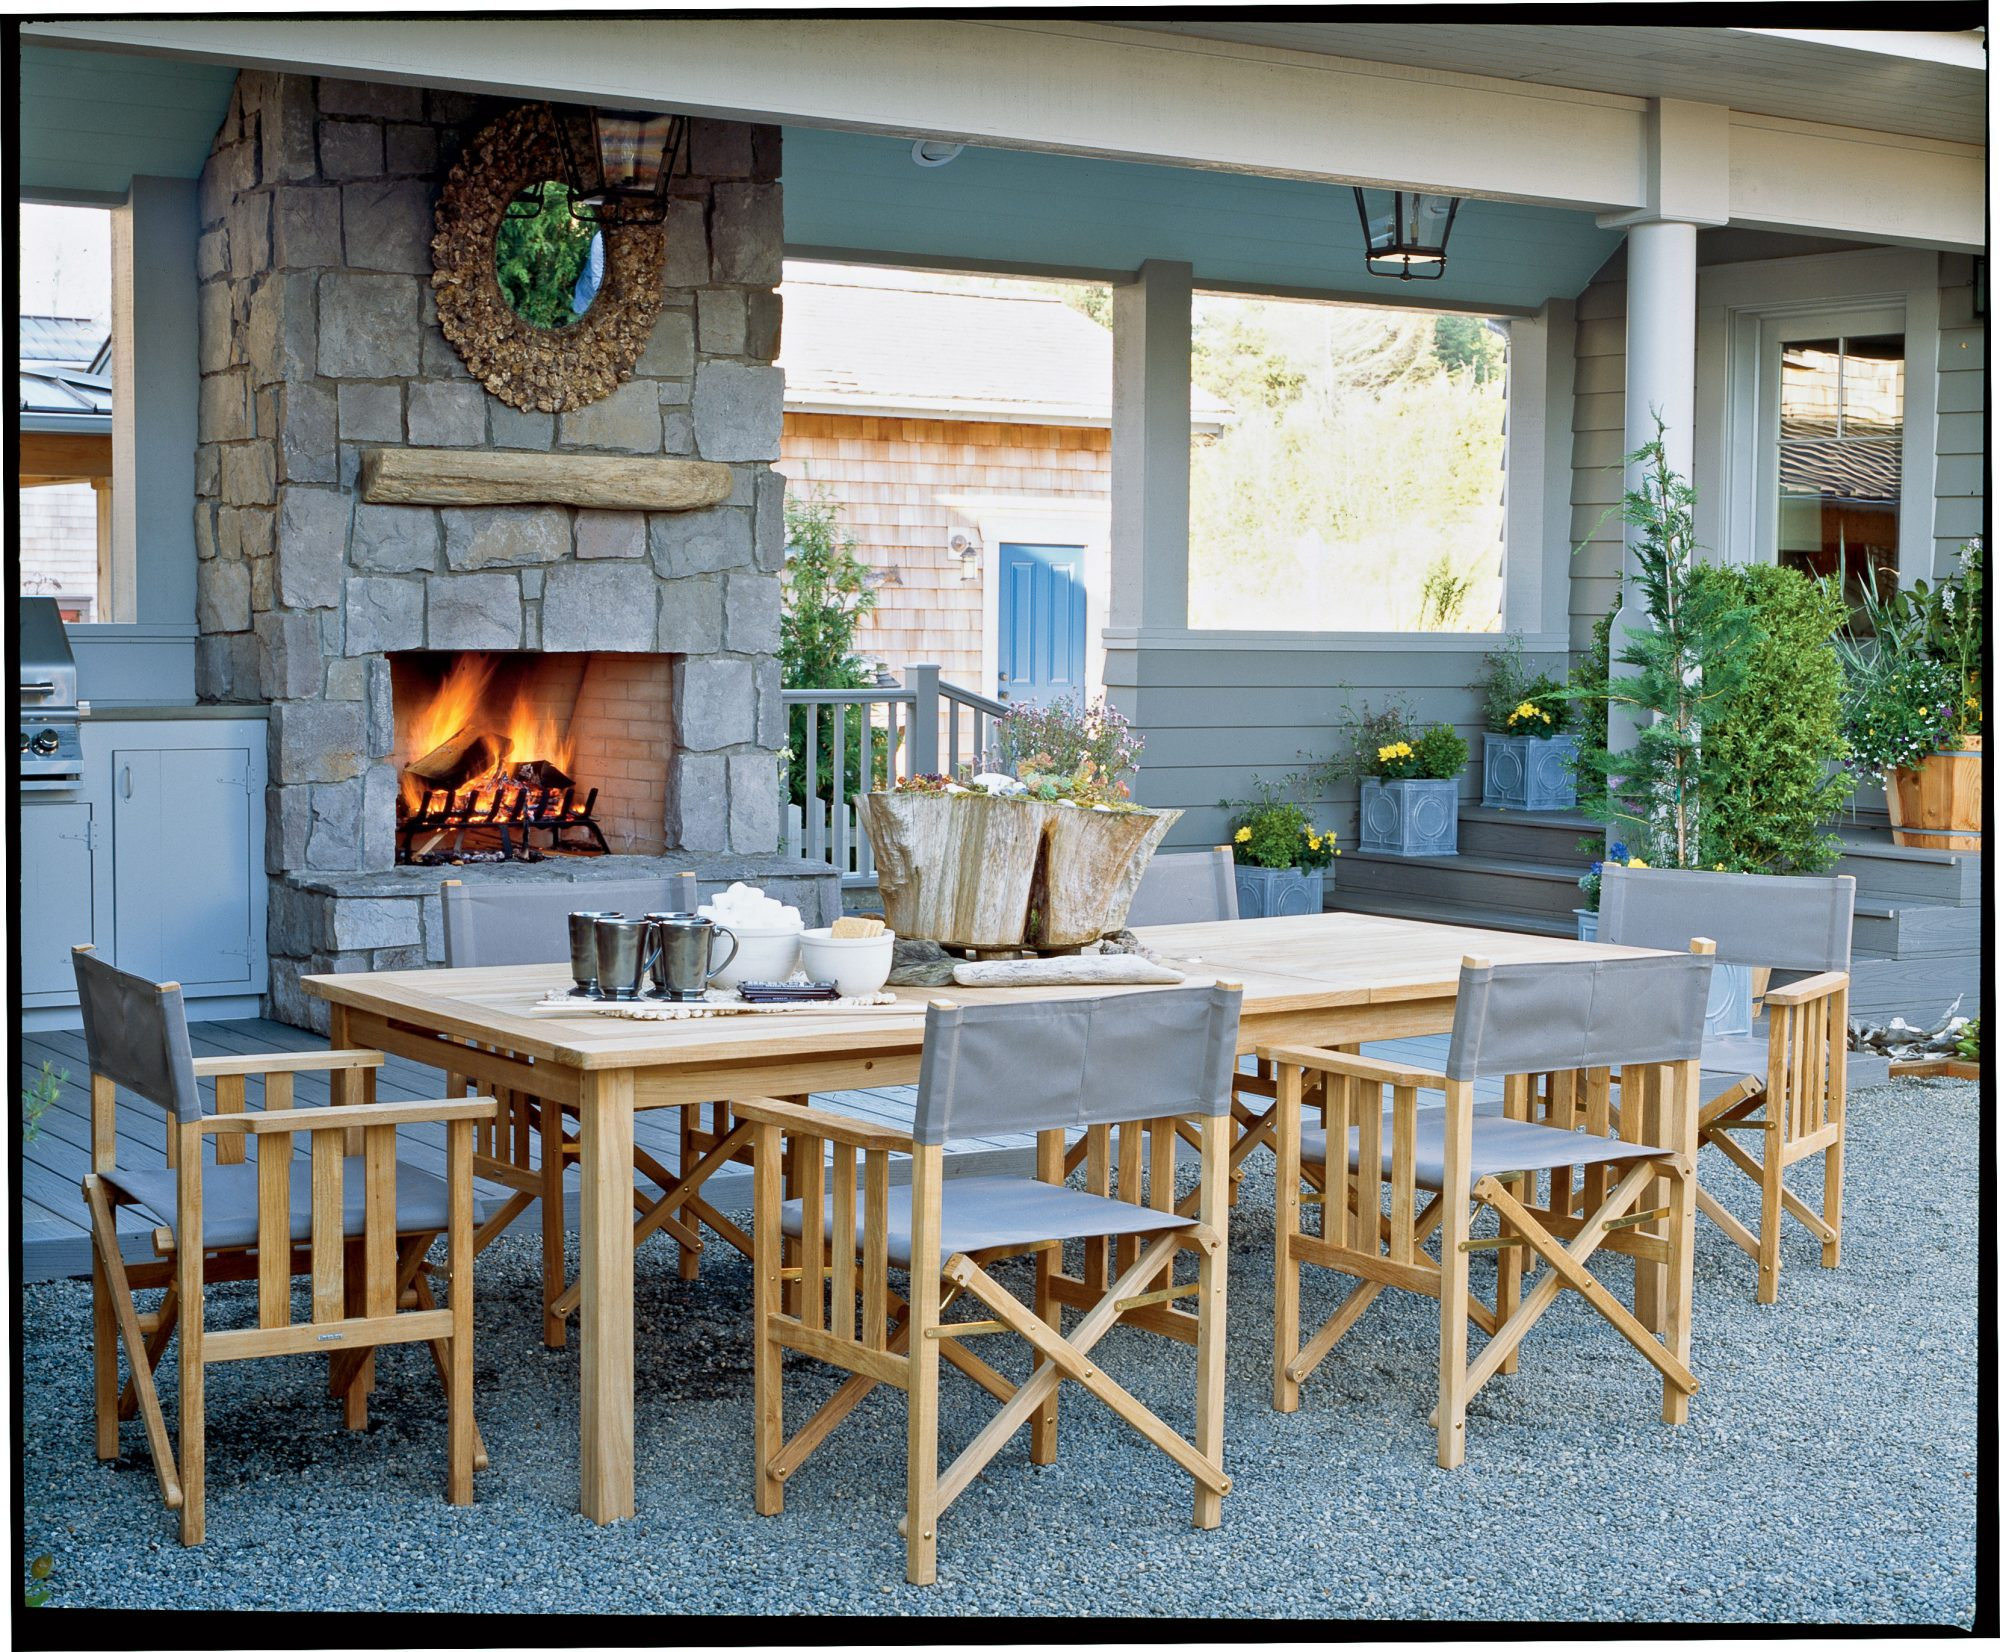 Pebble flooring and a glowing fireplace give this patio a warm, natural feel. A wooden table, director-style chairs, and a tree trunk centerpiece enhance the rustic vibe.